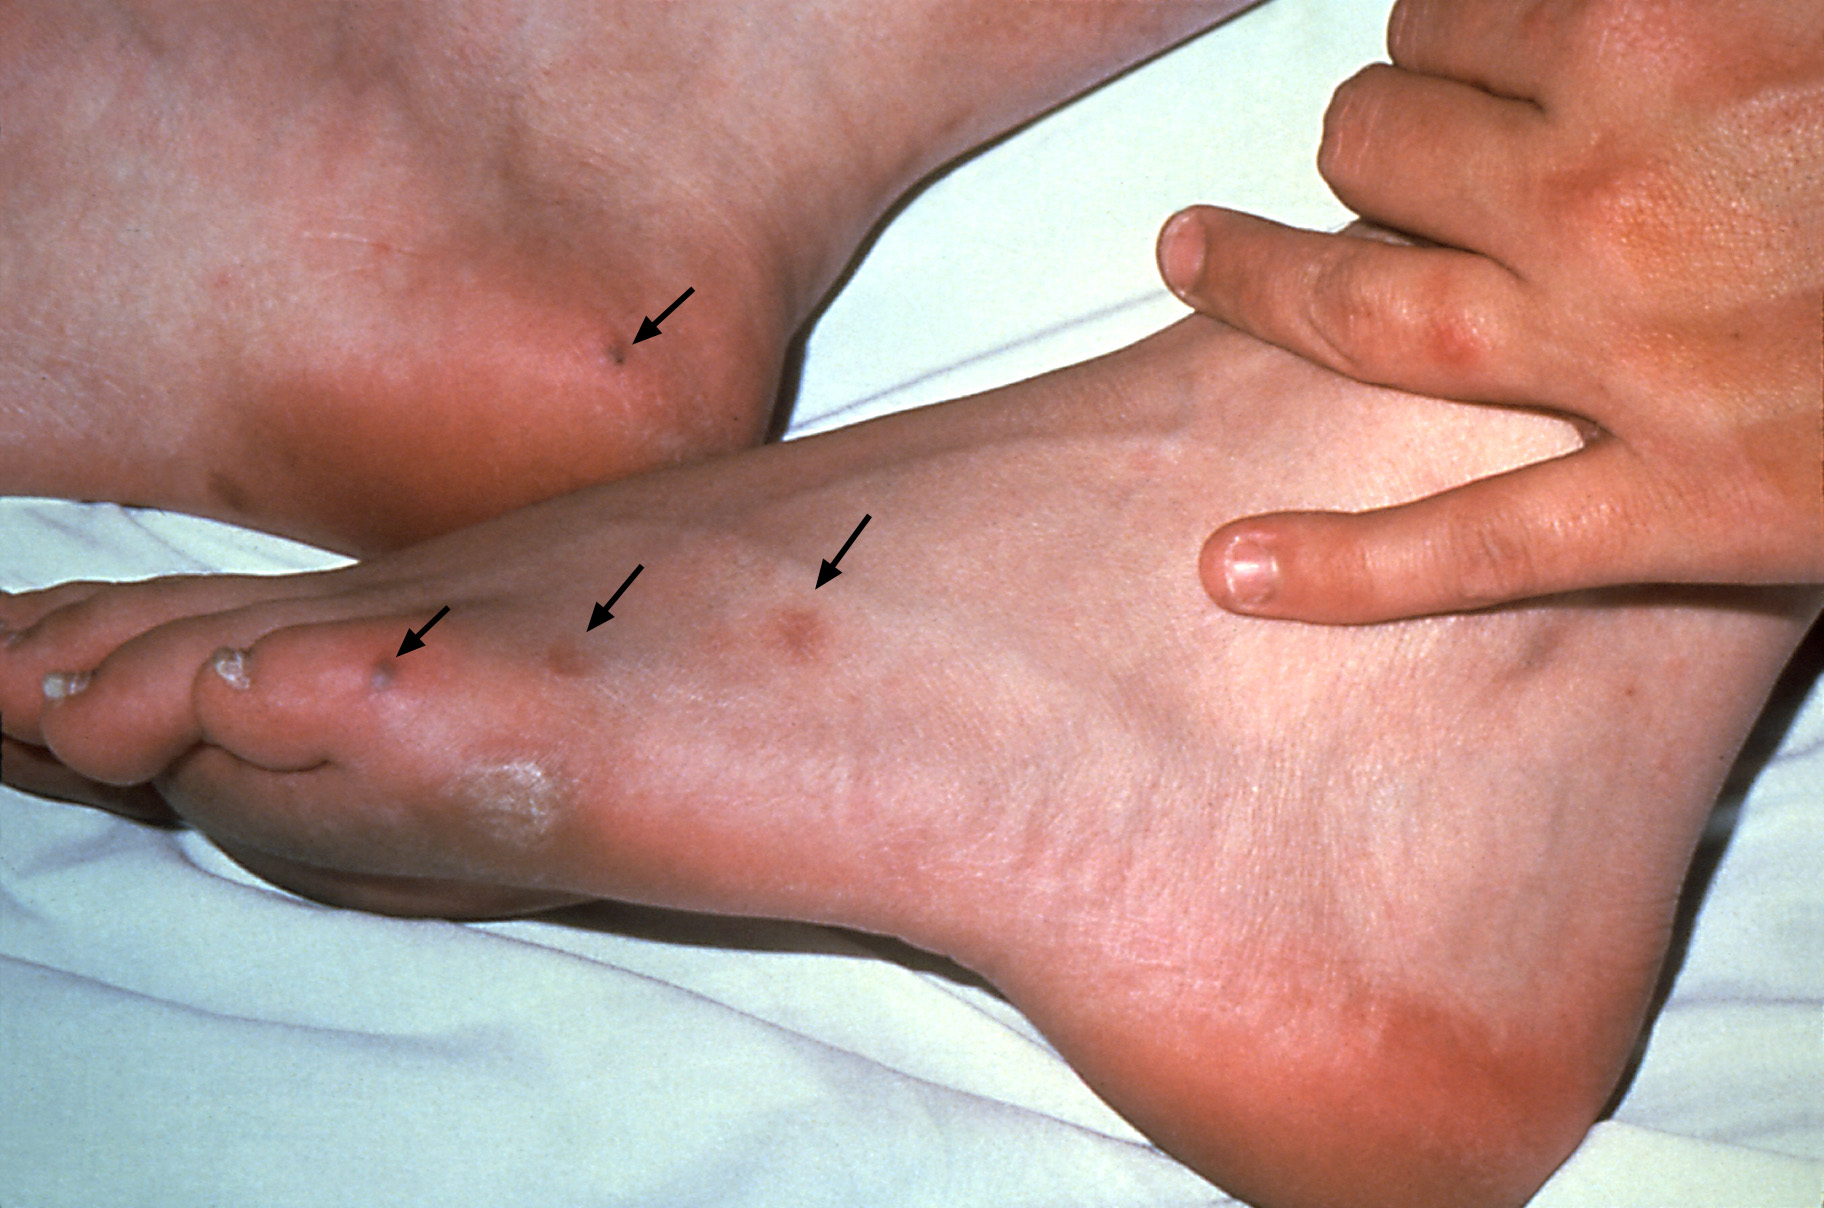 This patient had disseminated gonococcal infection including multiple cutaneous lesions on the feet (black arrows).<div>Source: Centers for Disease Control and Prevention Public Health Image Library (J. Pledger and Dr. S. E. Thompson, VDCD, 1979).</div>